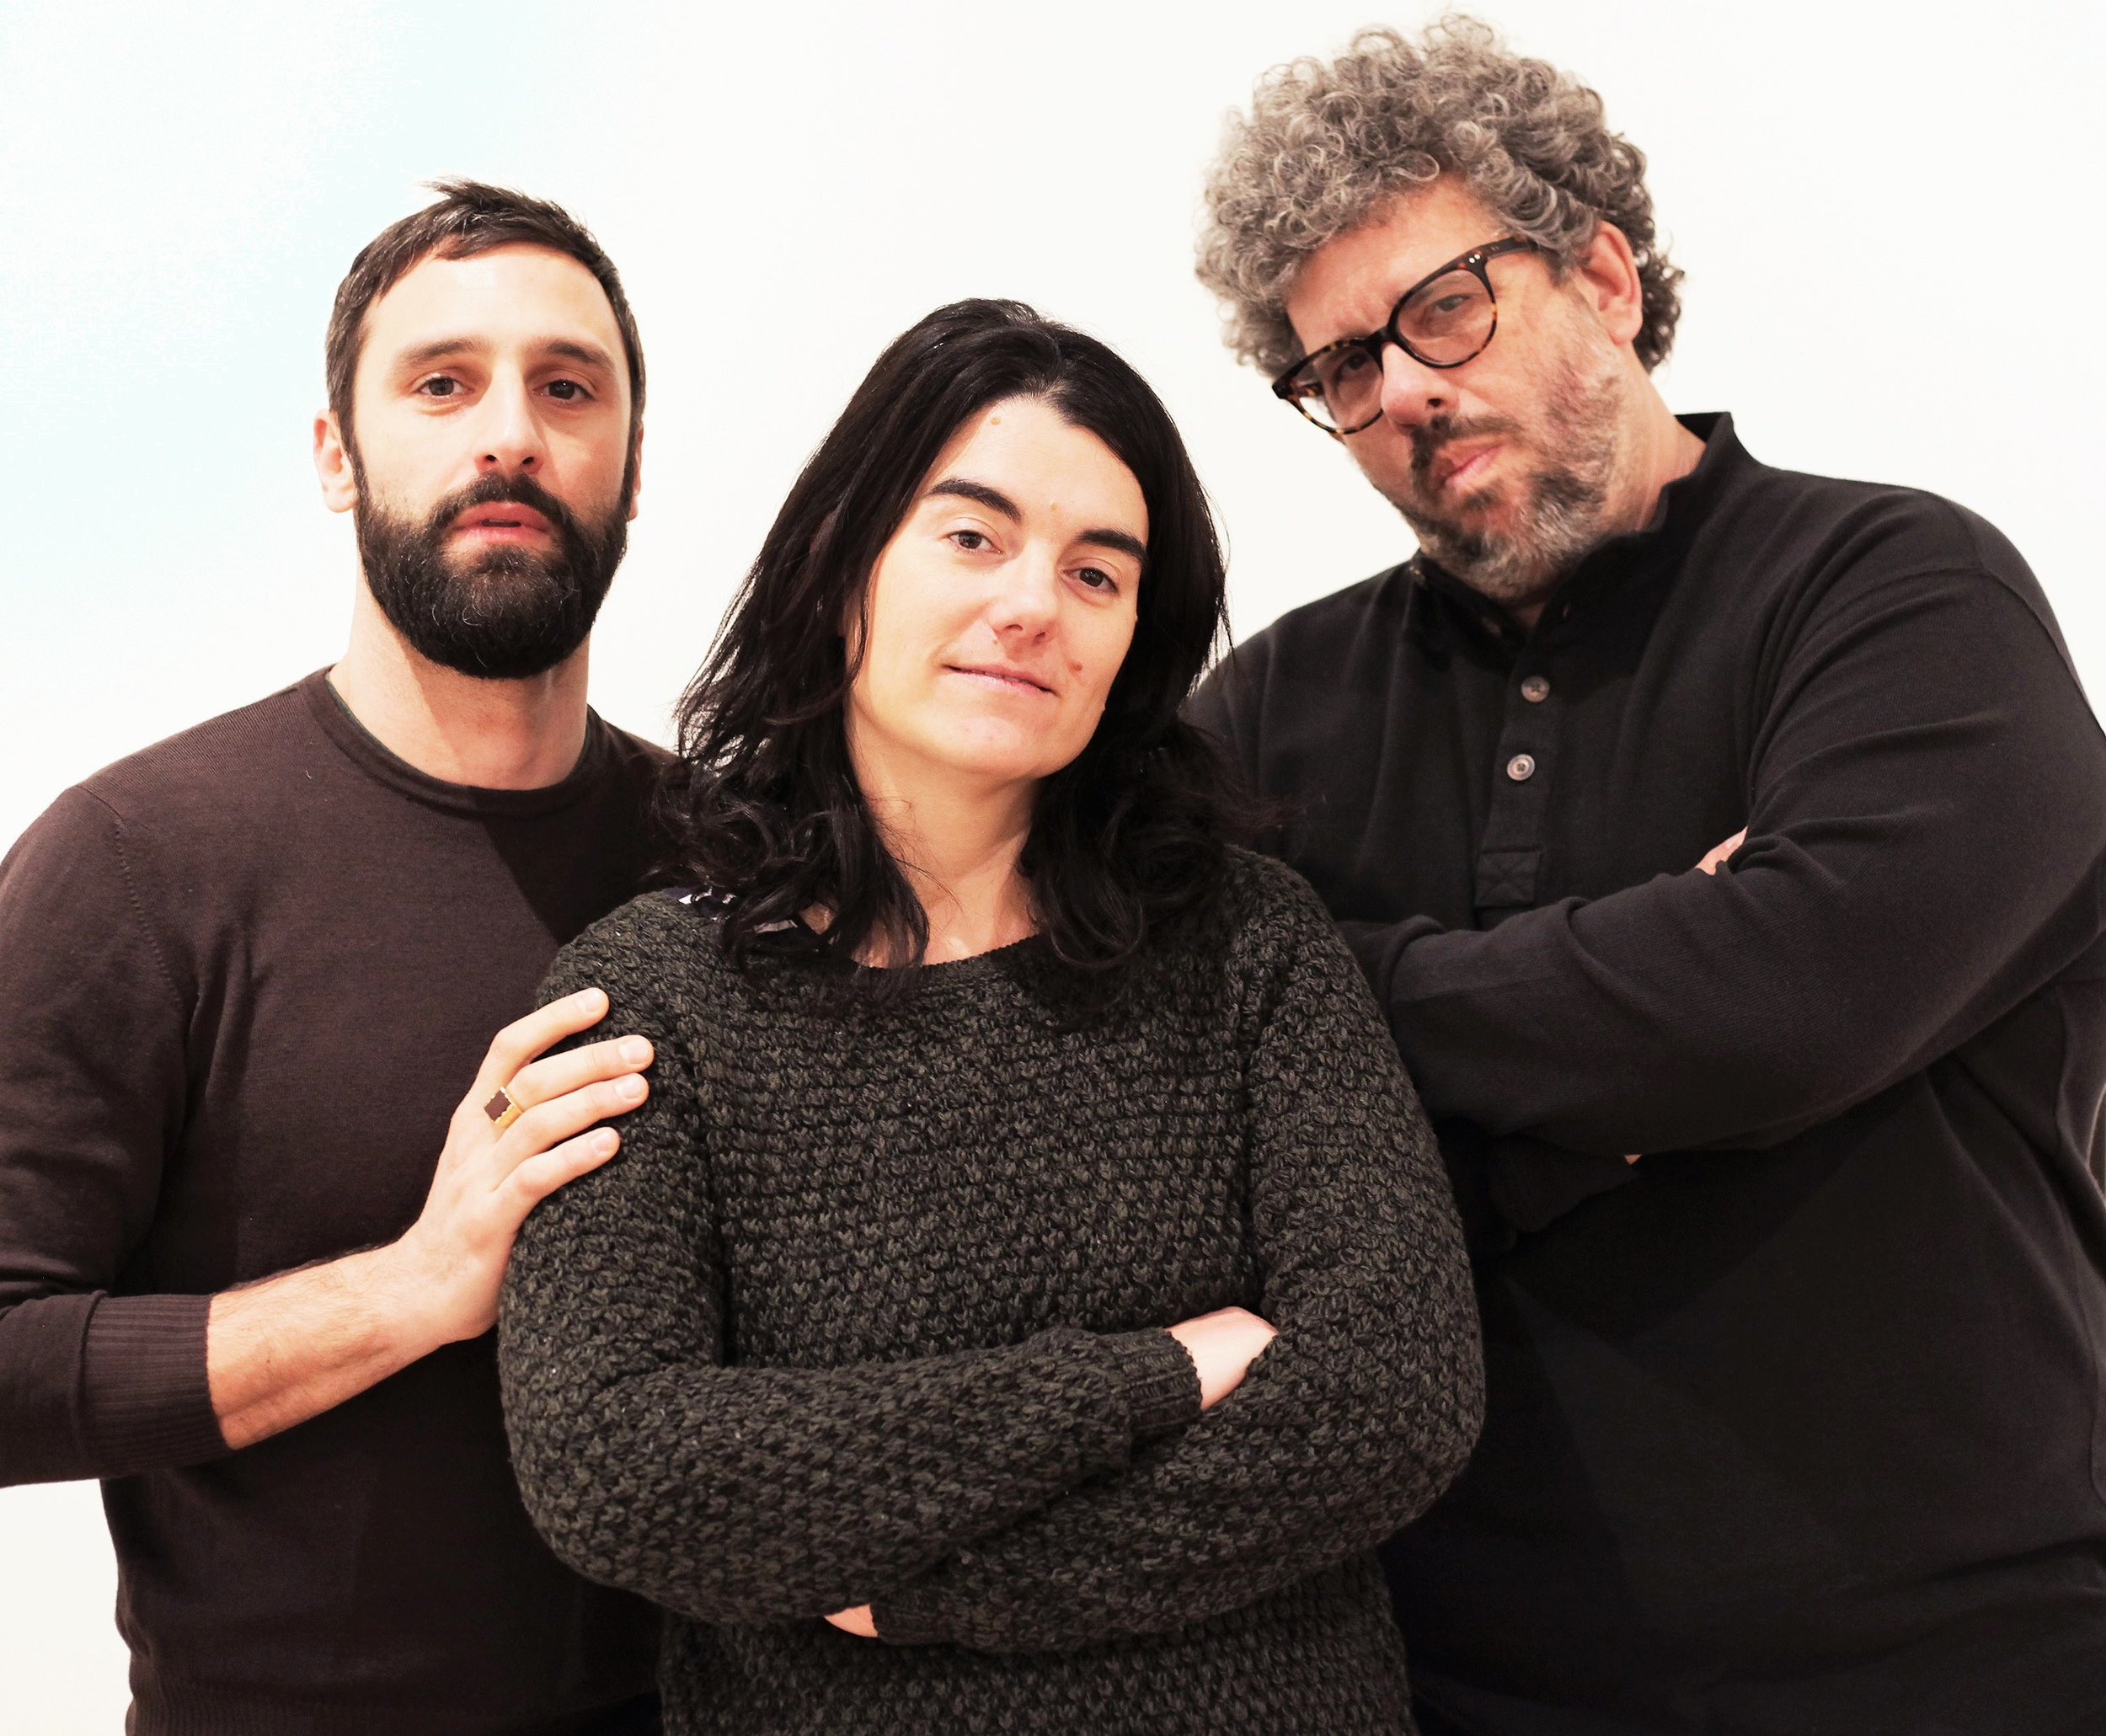 AdA: Author Directing Author  features one-act plays by (from left) Marco Calvani of Italy, Spain's Marta Buchaca, and American Neil LaBute. Top, Gia Crovatin and Richard Kind in LaBute's  I Don't Know What I Can Save You From .